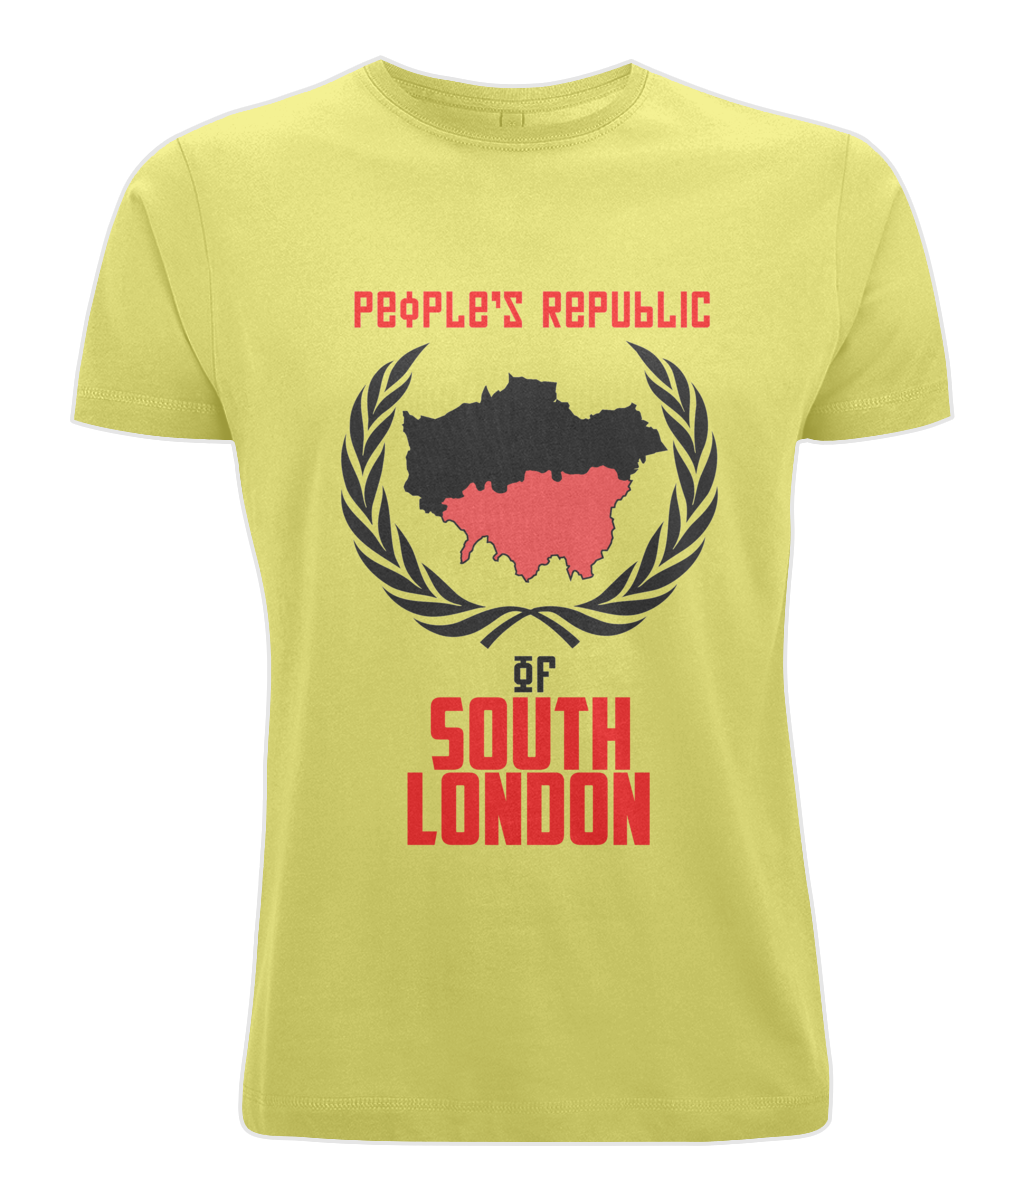 People's Republic of South London Unisex Tee